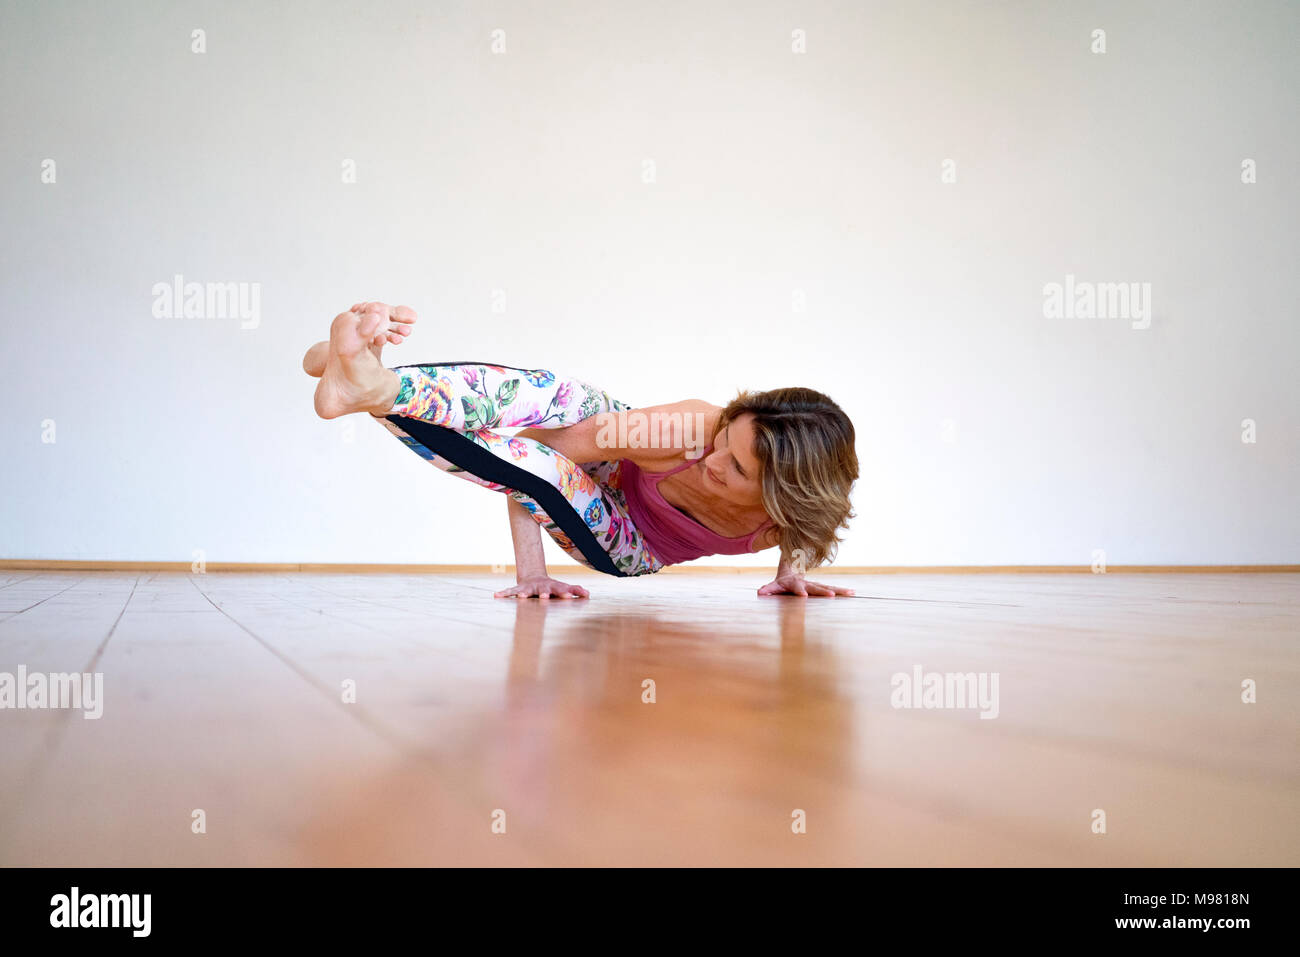 Mature woman practicing yoga on floor in empty room Stock Photo